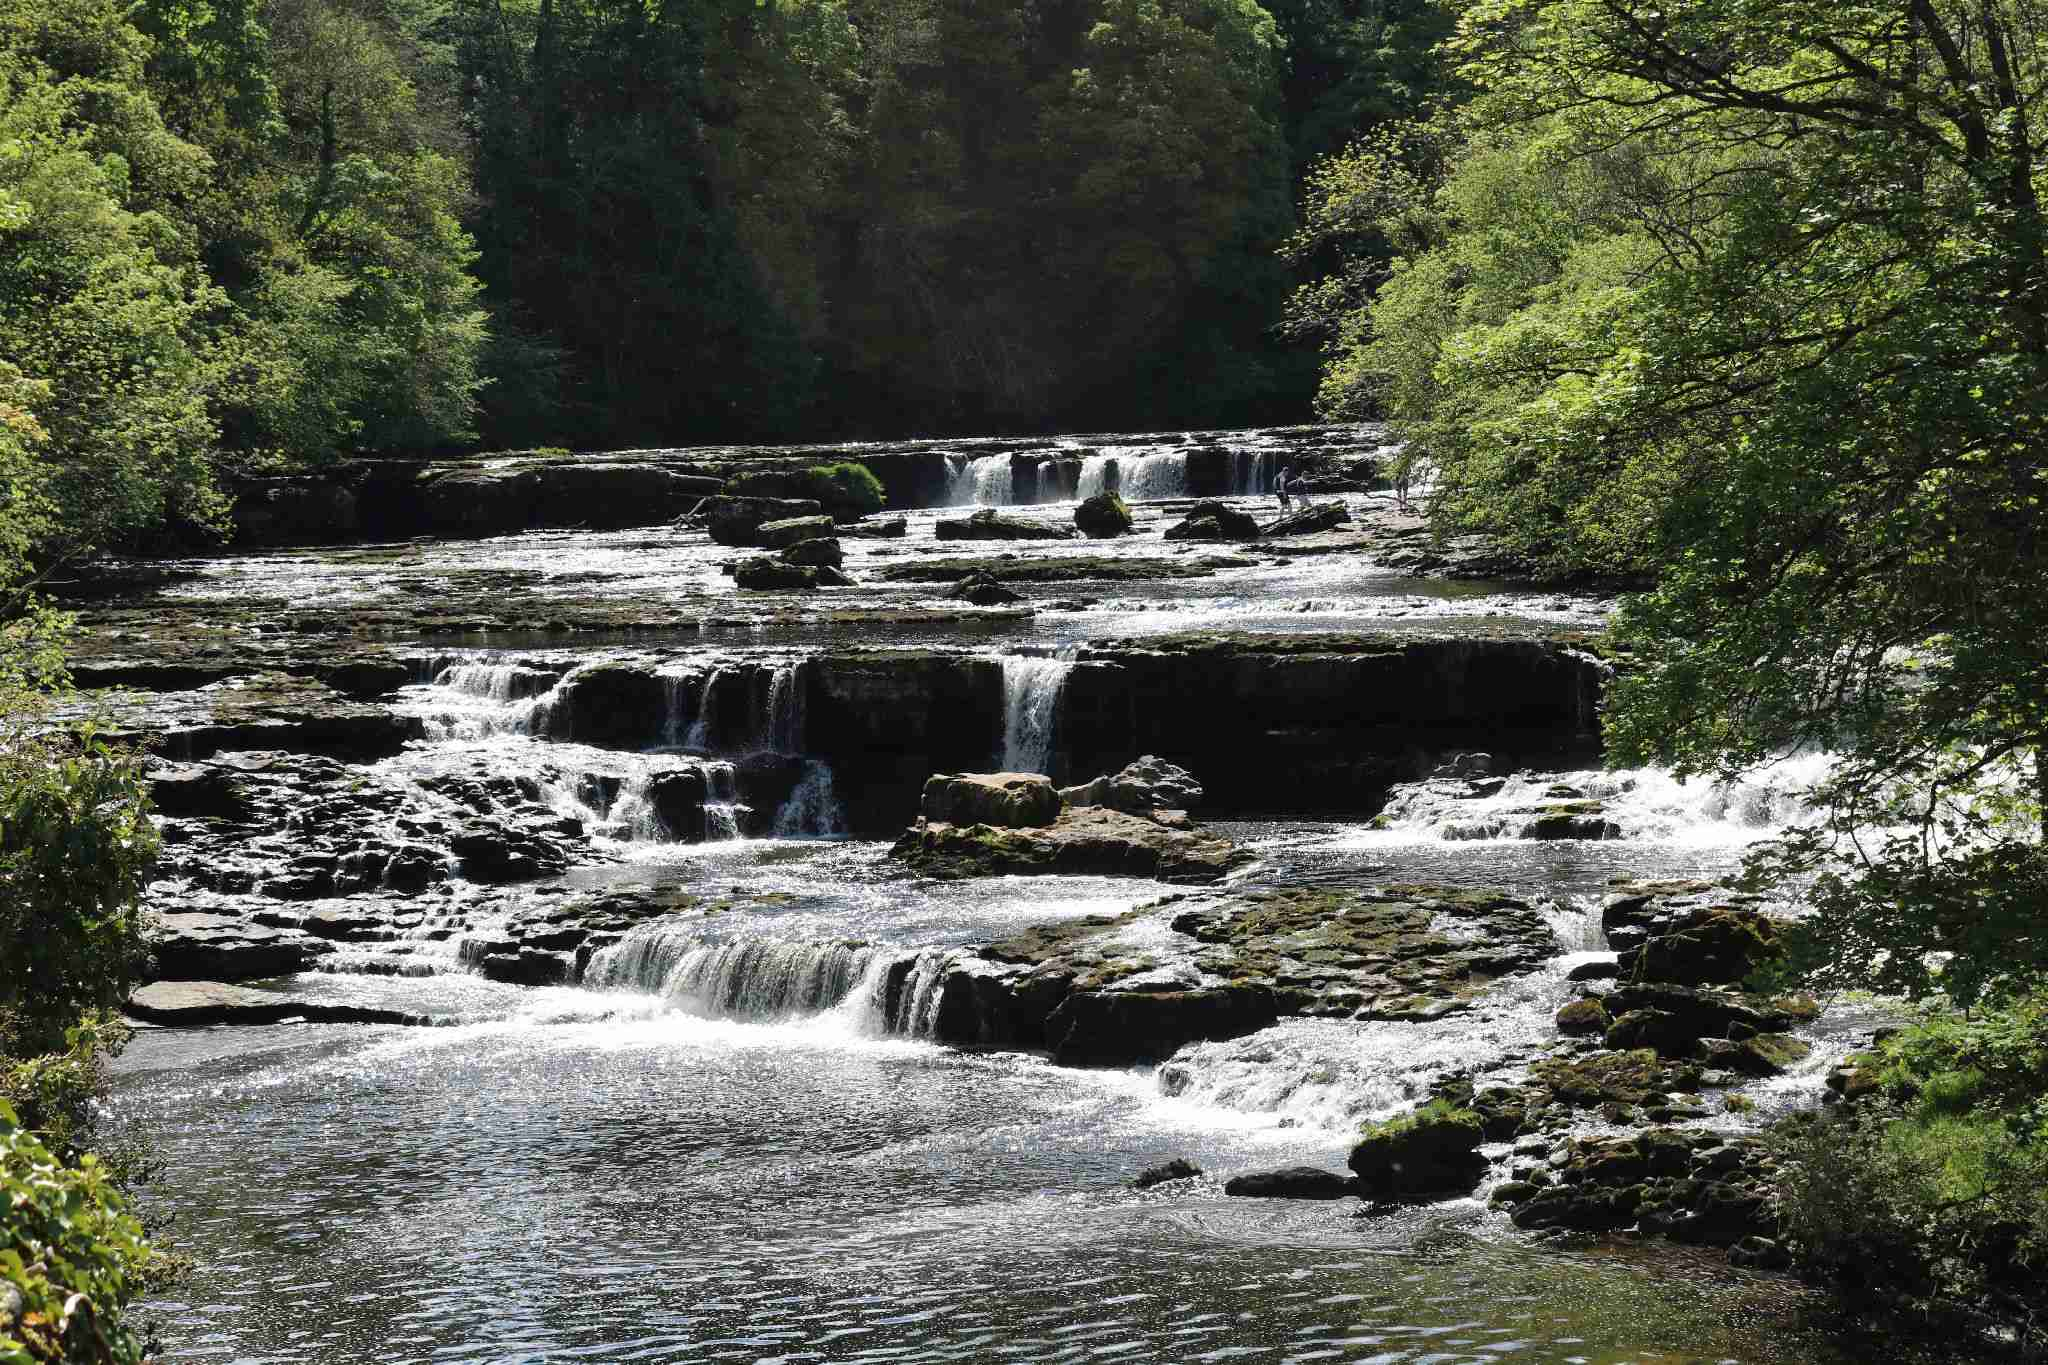 Upper falls in river Ure